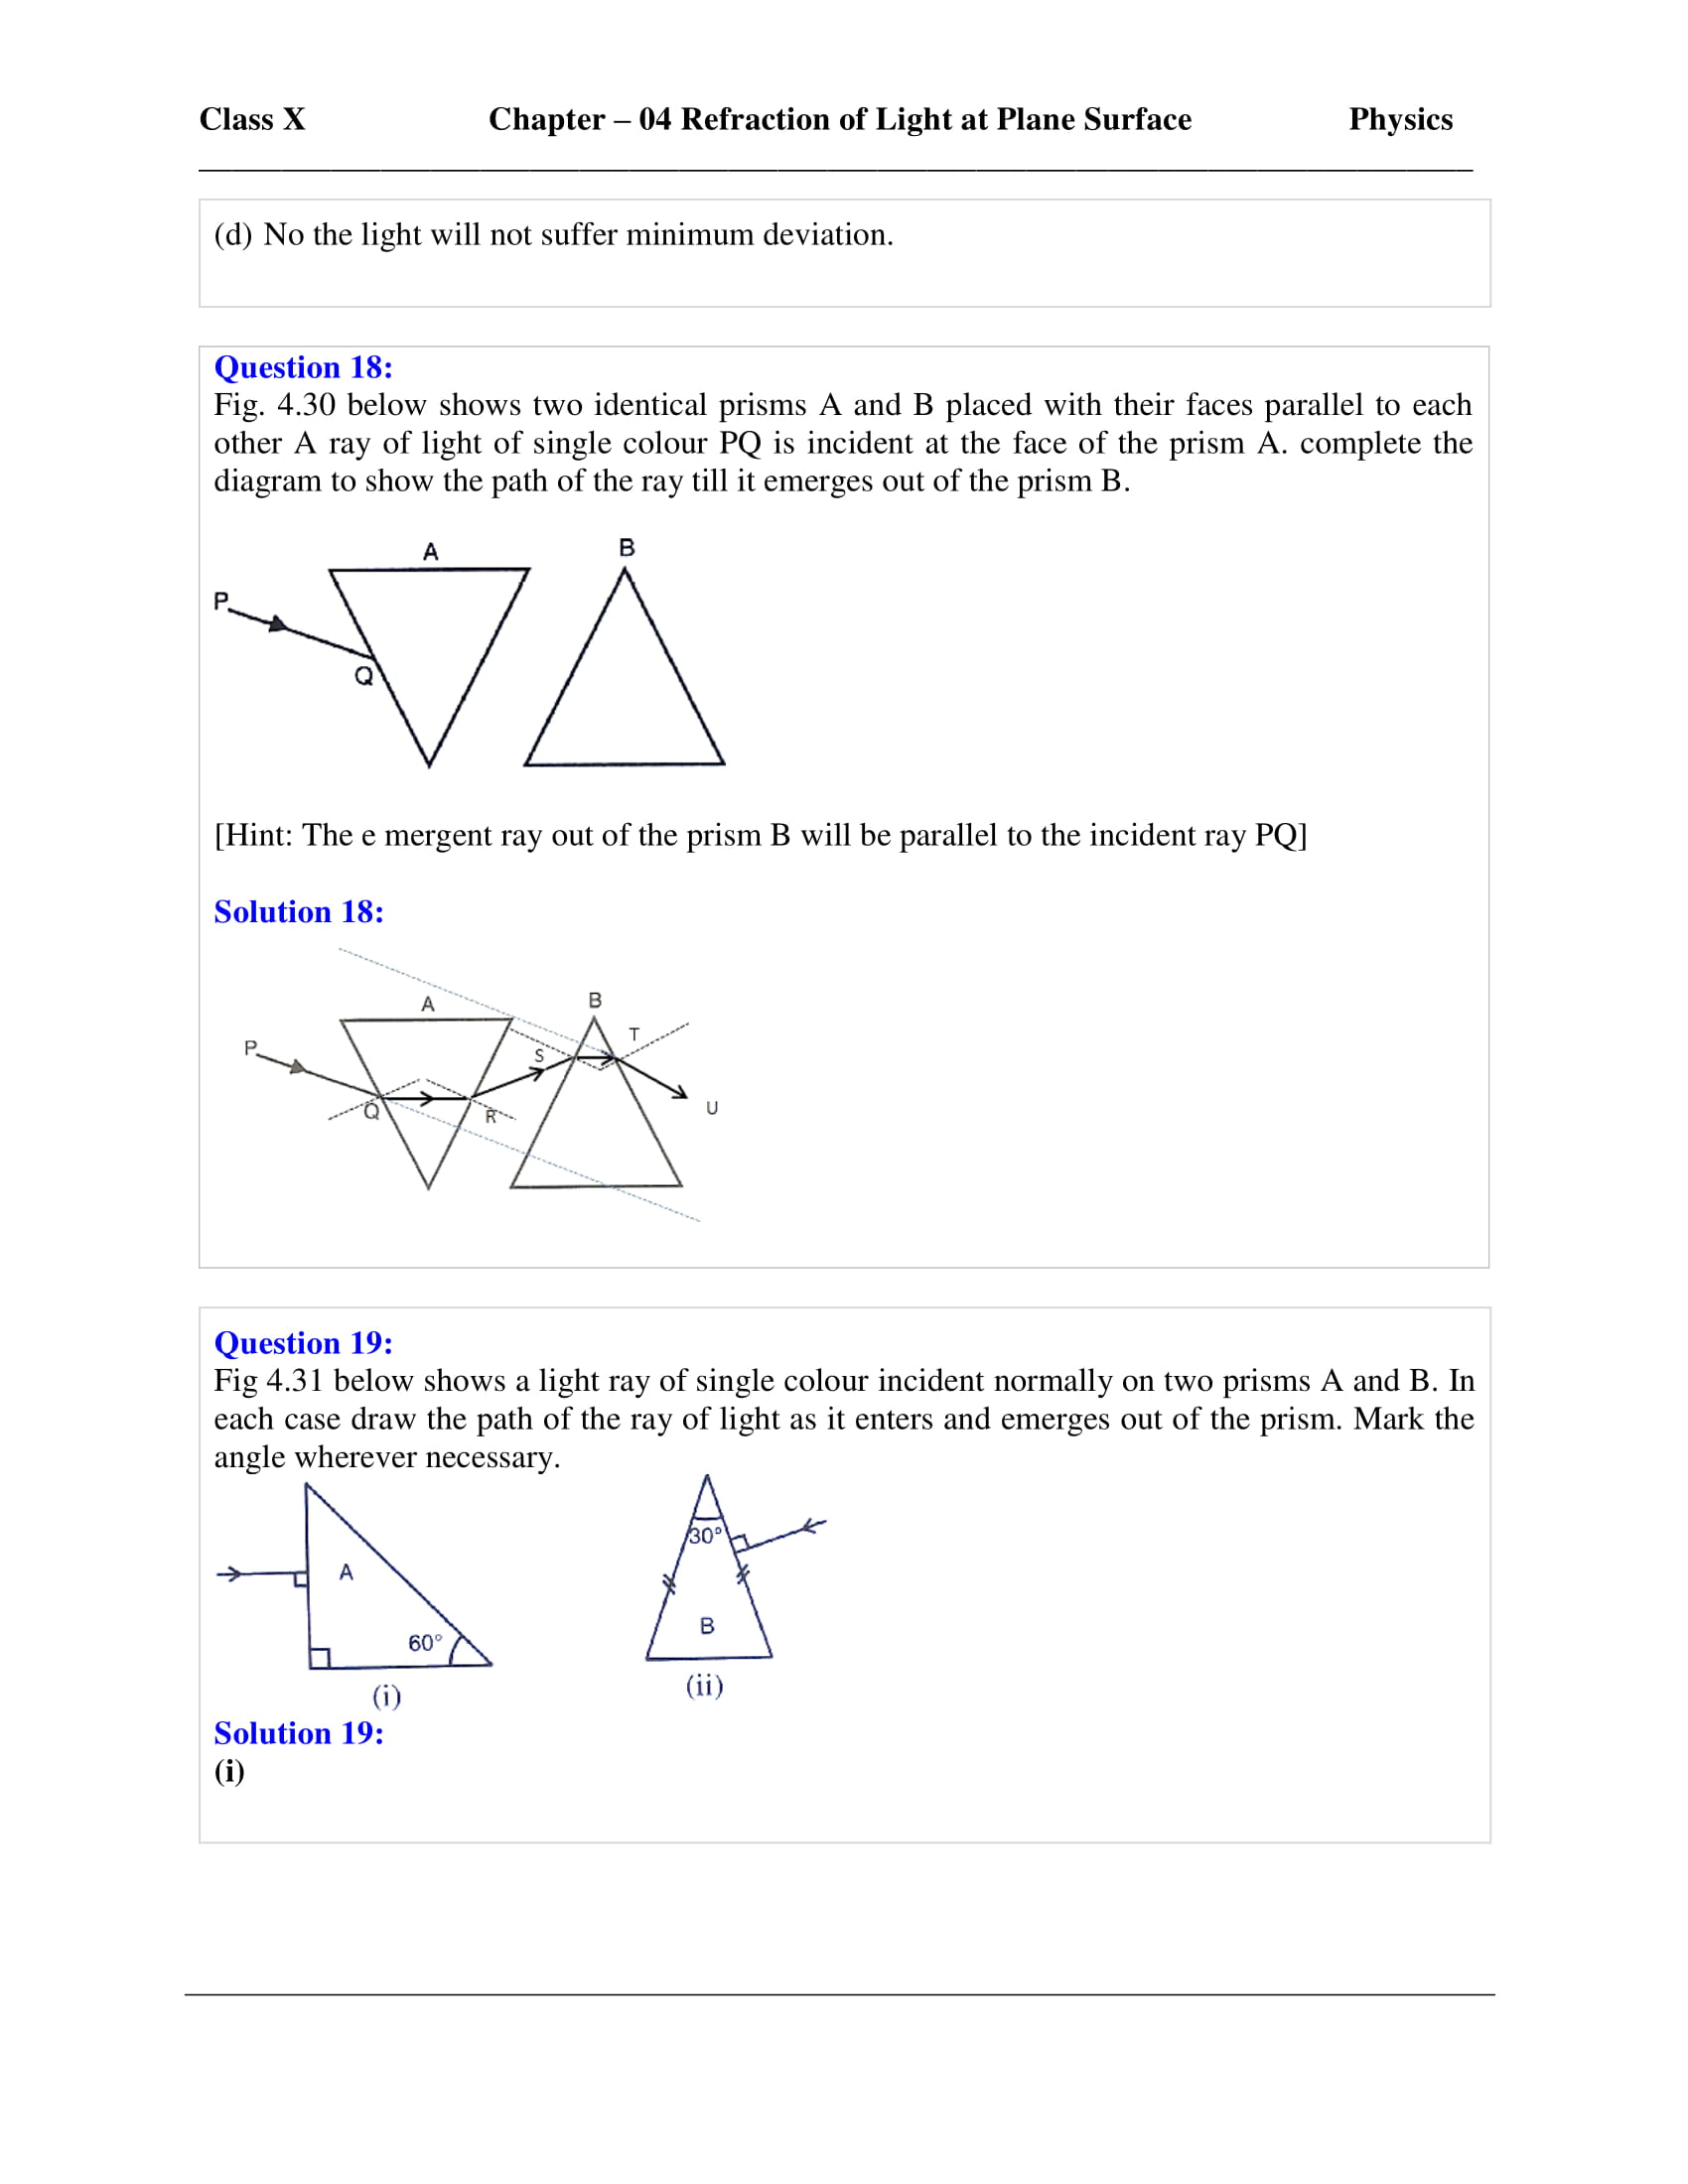 icse-selina-physics-solutions-class-10-chapter-4-refraction-of-light-at-plane-surfaces-19